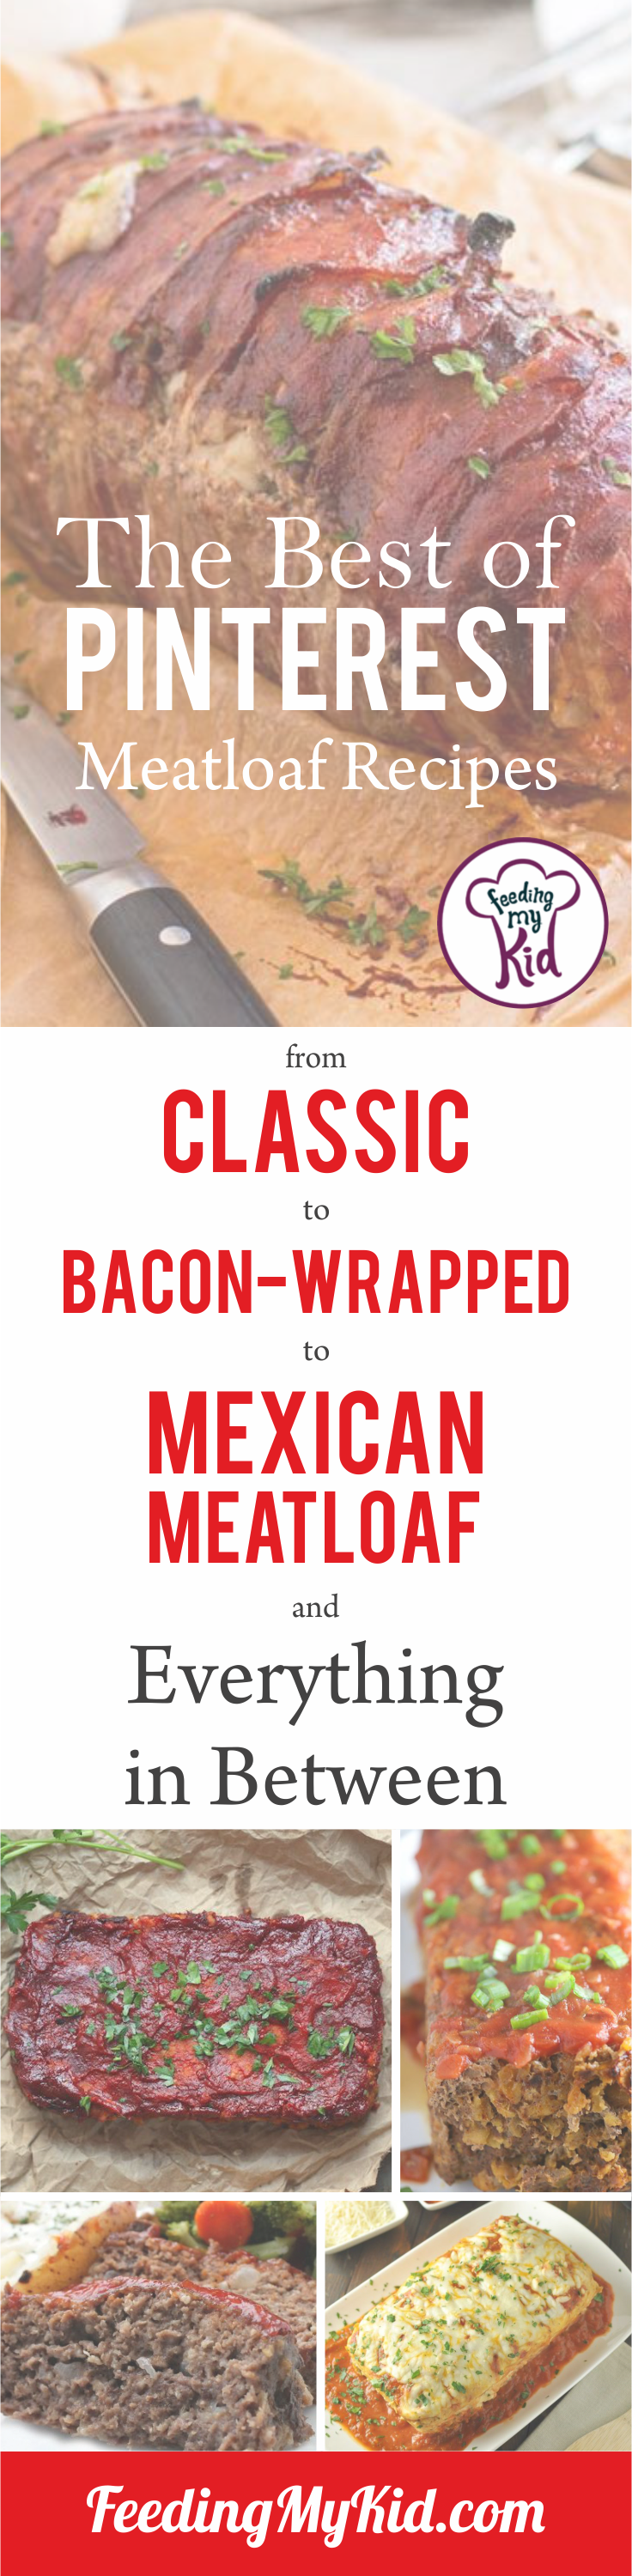 Make meatloaf for dinner tonight using the top meatloaf recipes on Pinterest. From classic to bacon-wrapped and everything in between!